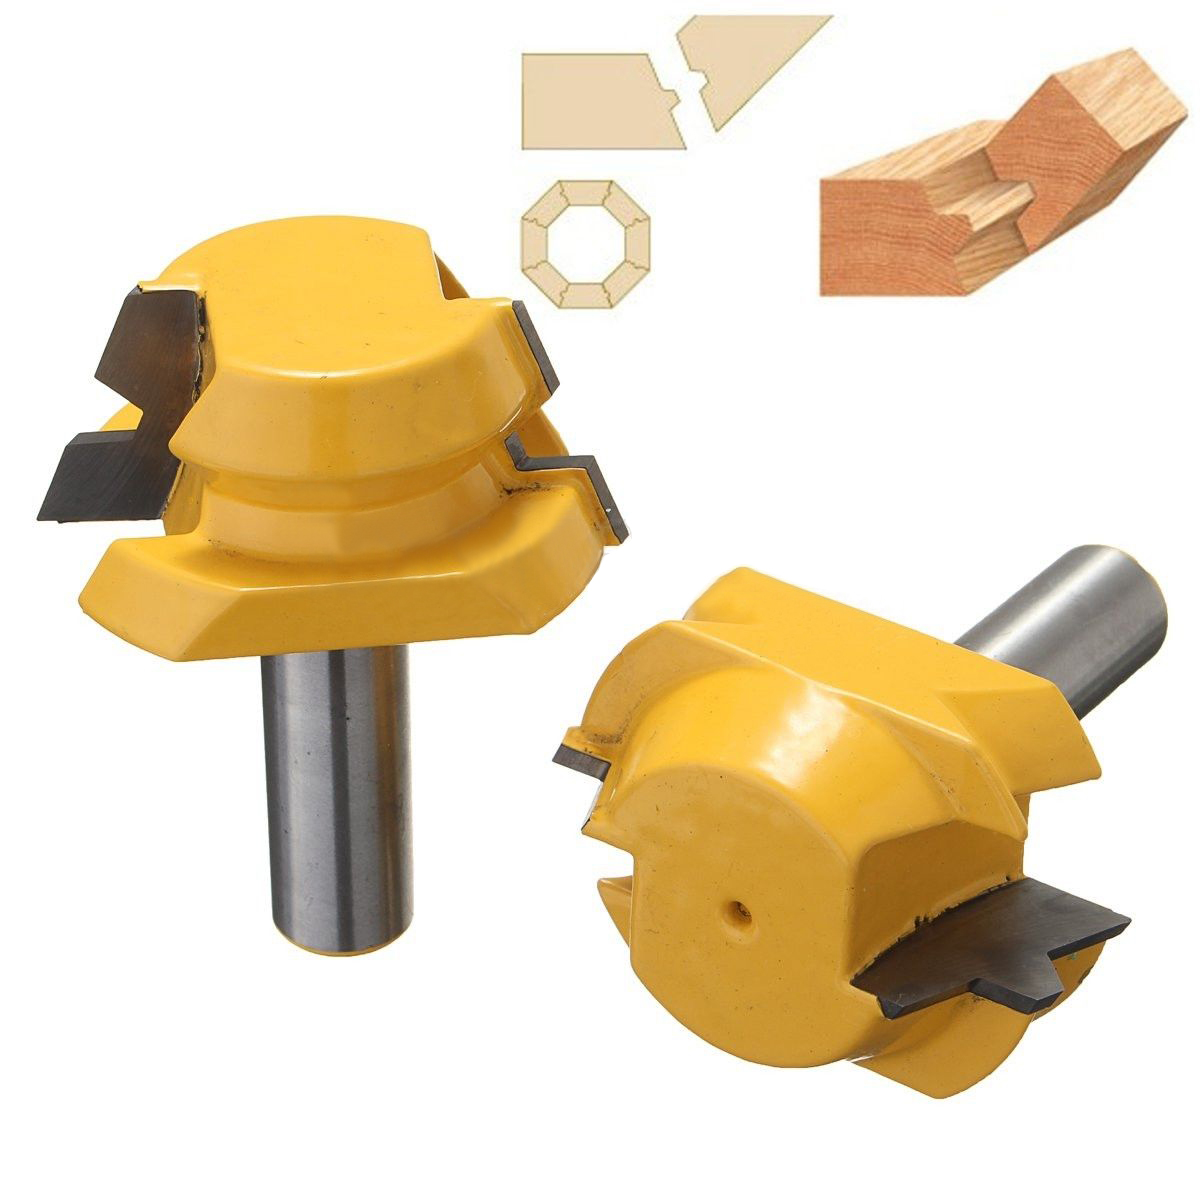 Mayitr 2pcs 1/2 Shank Wood Router Bit Durable Carbide Alloy 22.5 Degree Router Bits Lock Miter Woodworking Milling Cutter Tools 1pc strong mayitr 1 2 shank 2 1 4 dia bottom cleaning router bit high grade carbide woodworking milling cutter mdf wood tool